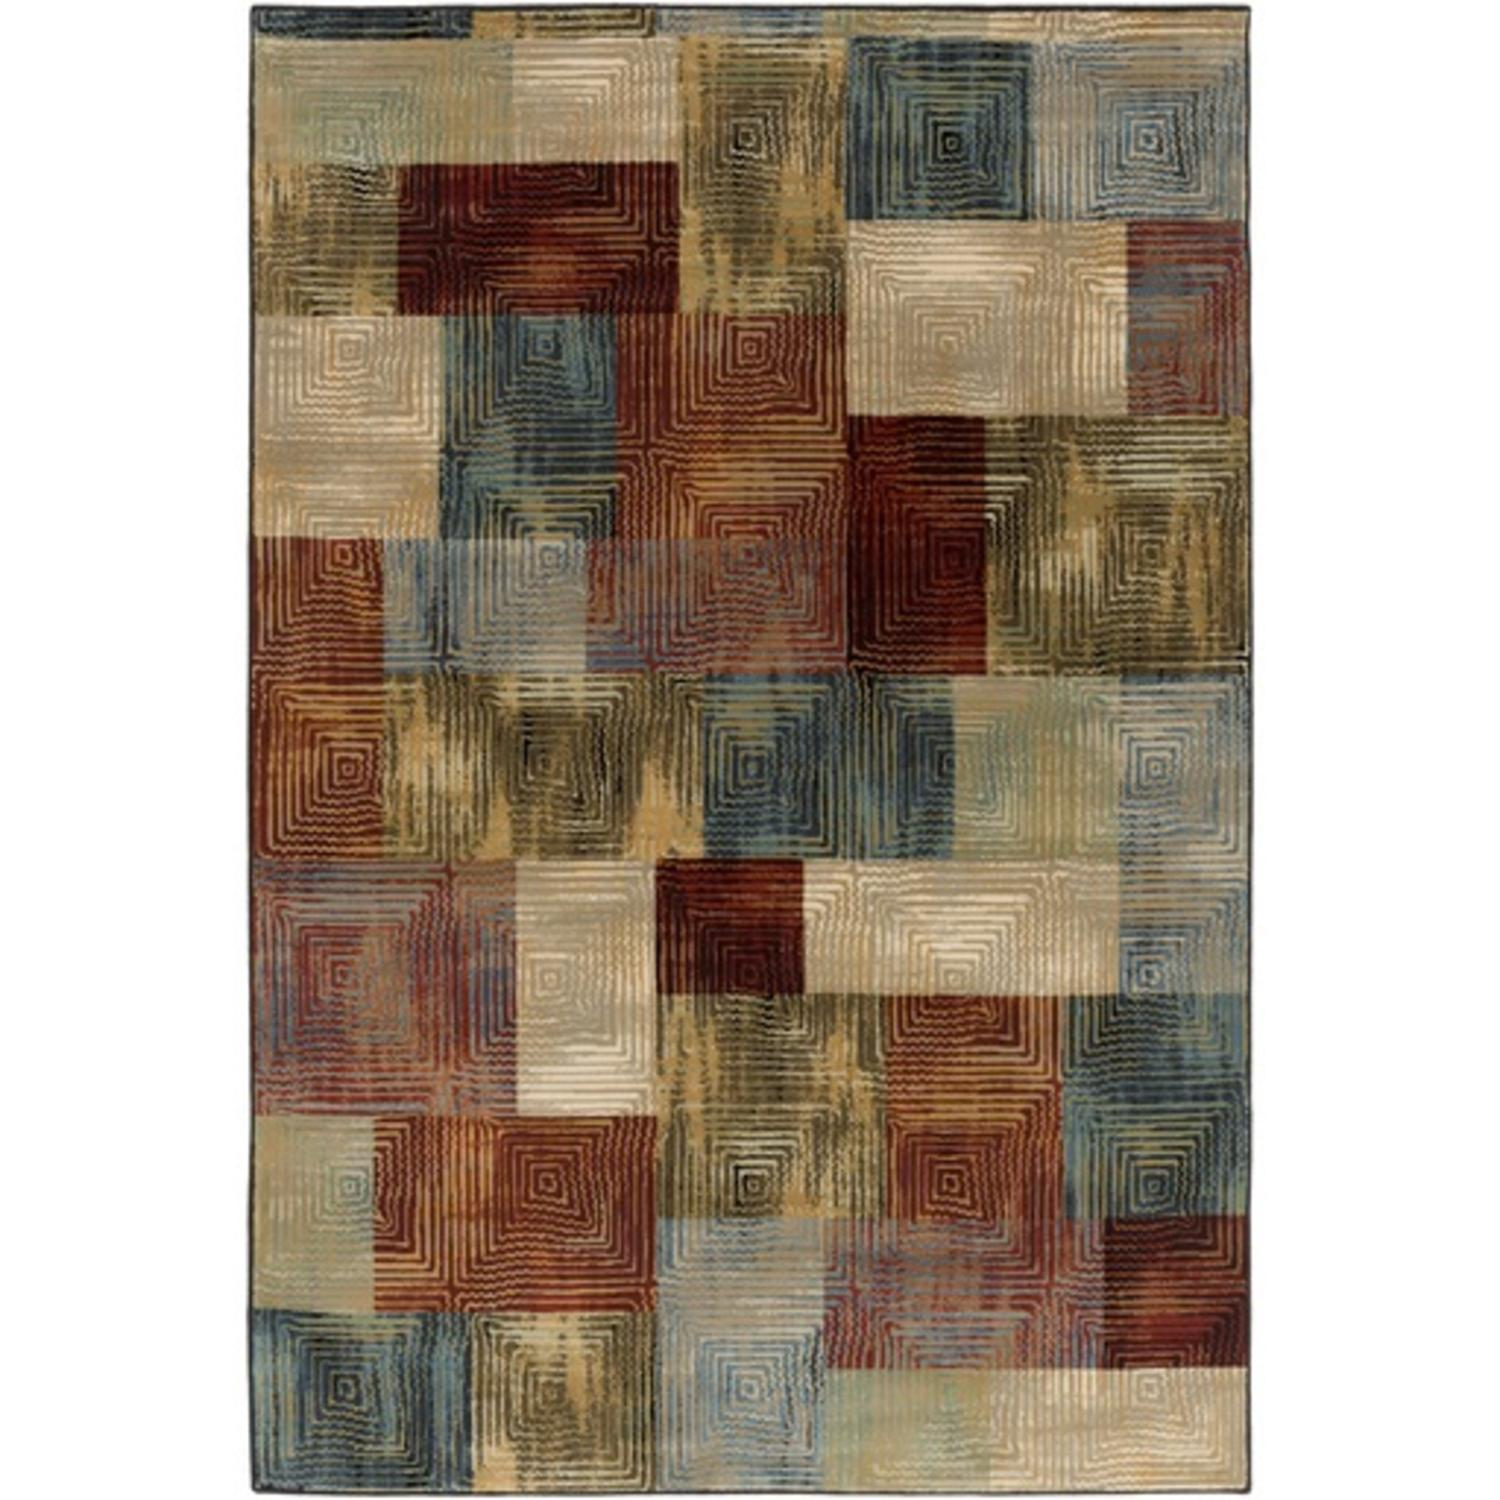 1.85' x 2.9' Whimsical Shingles Burgandy, Cobalt Blue, and Olive Green Area Throw Rug